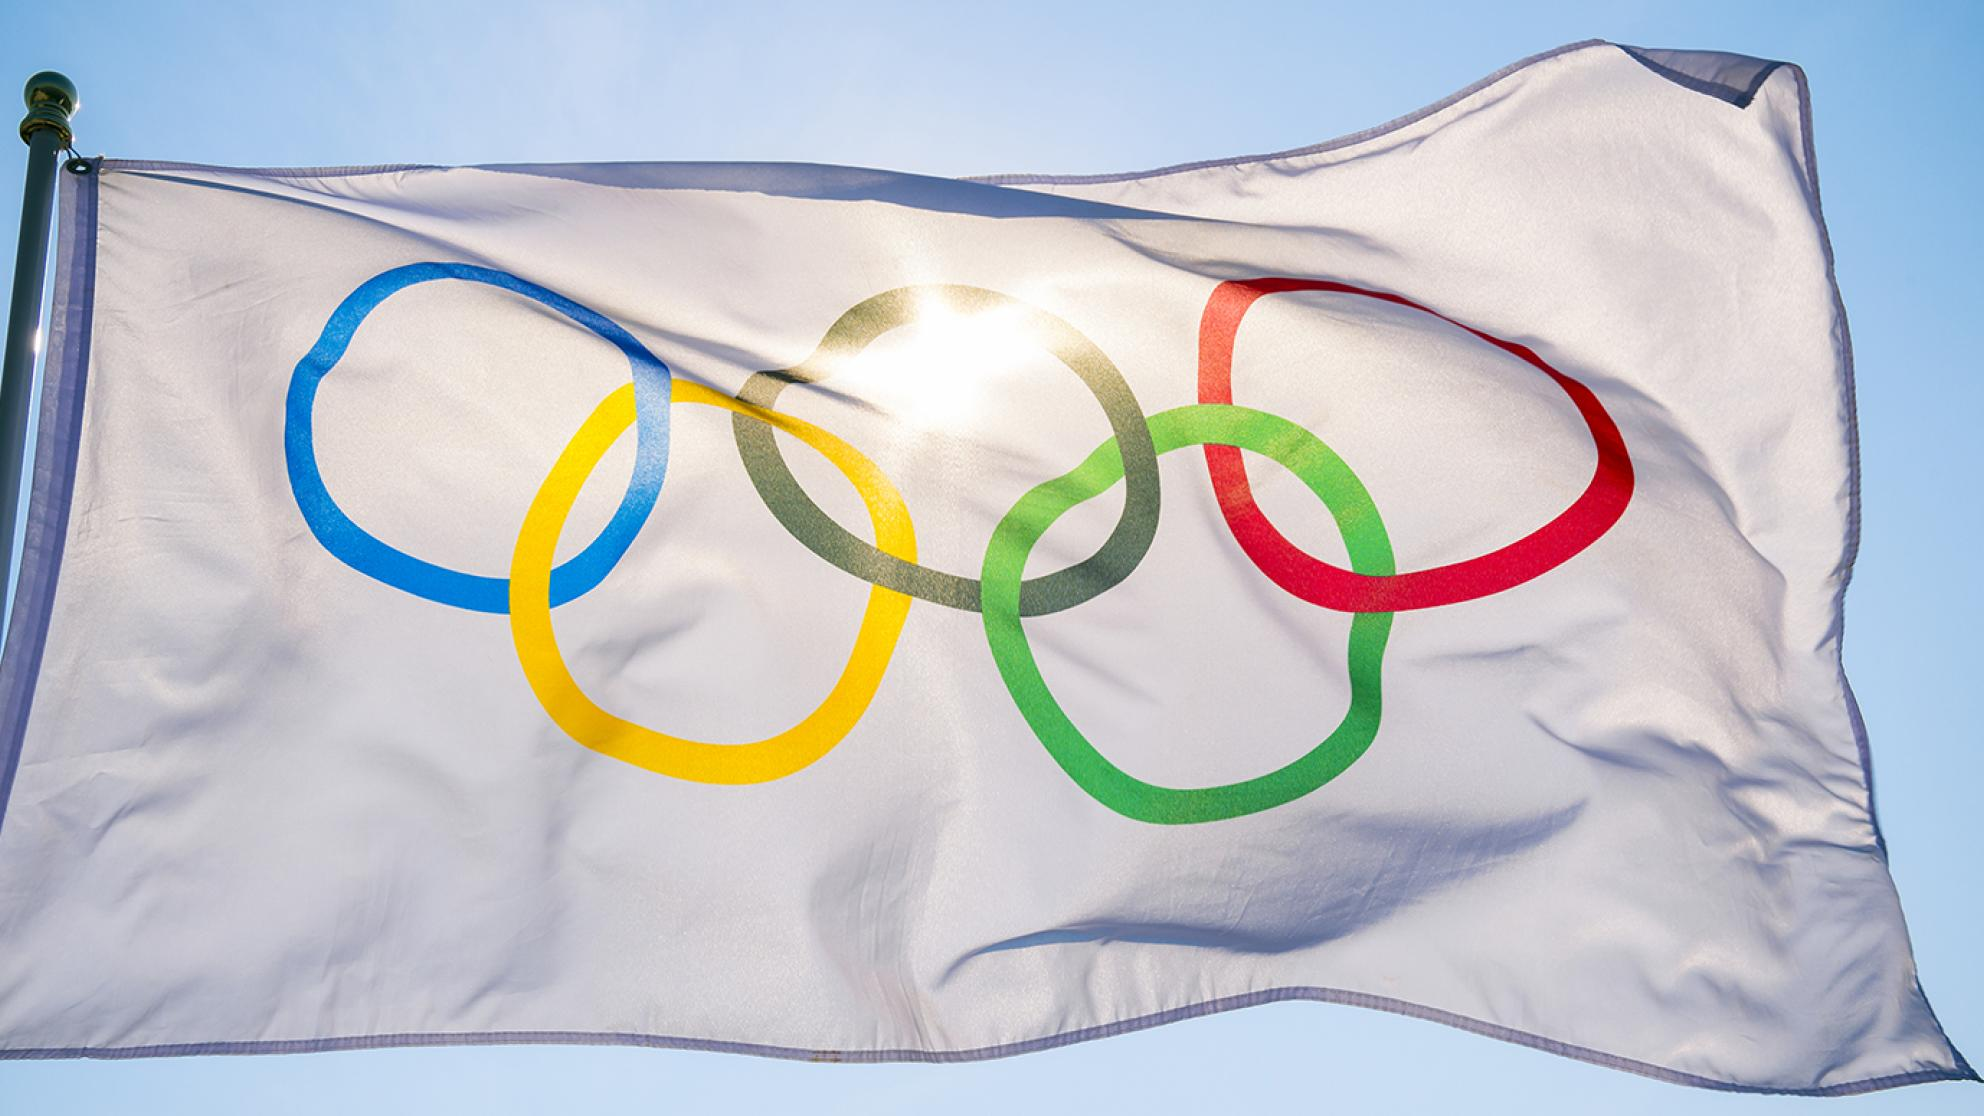 The Olympic flag against a blue sky